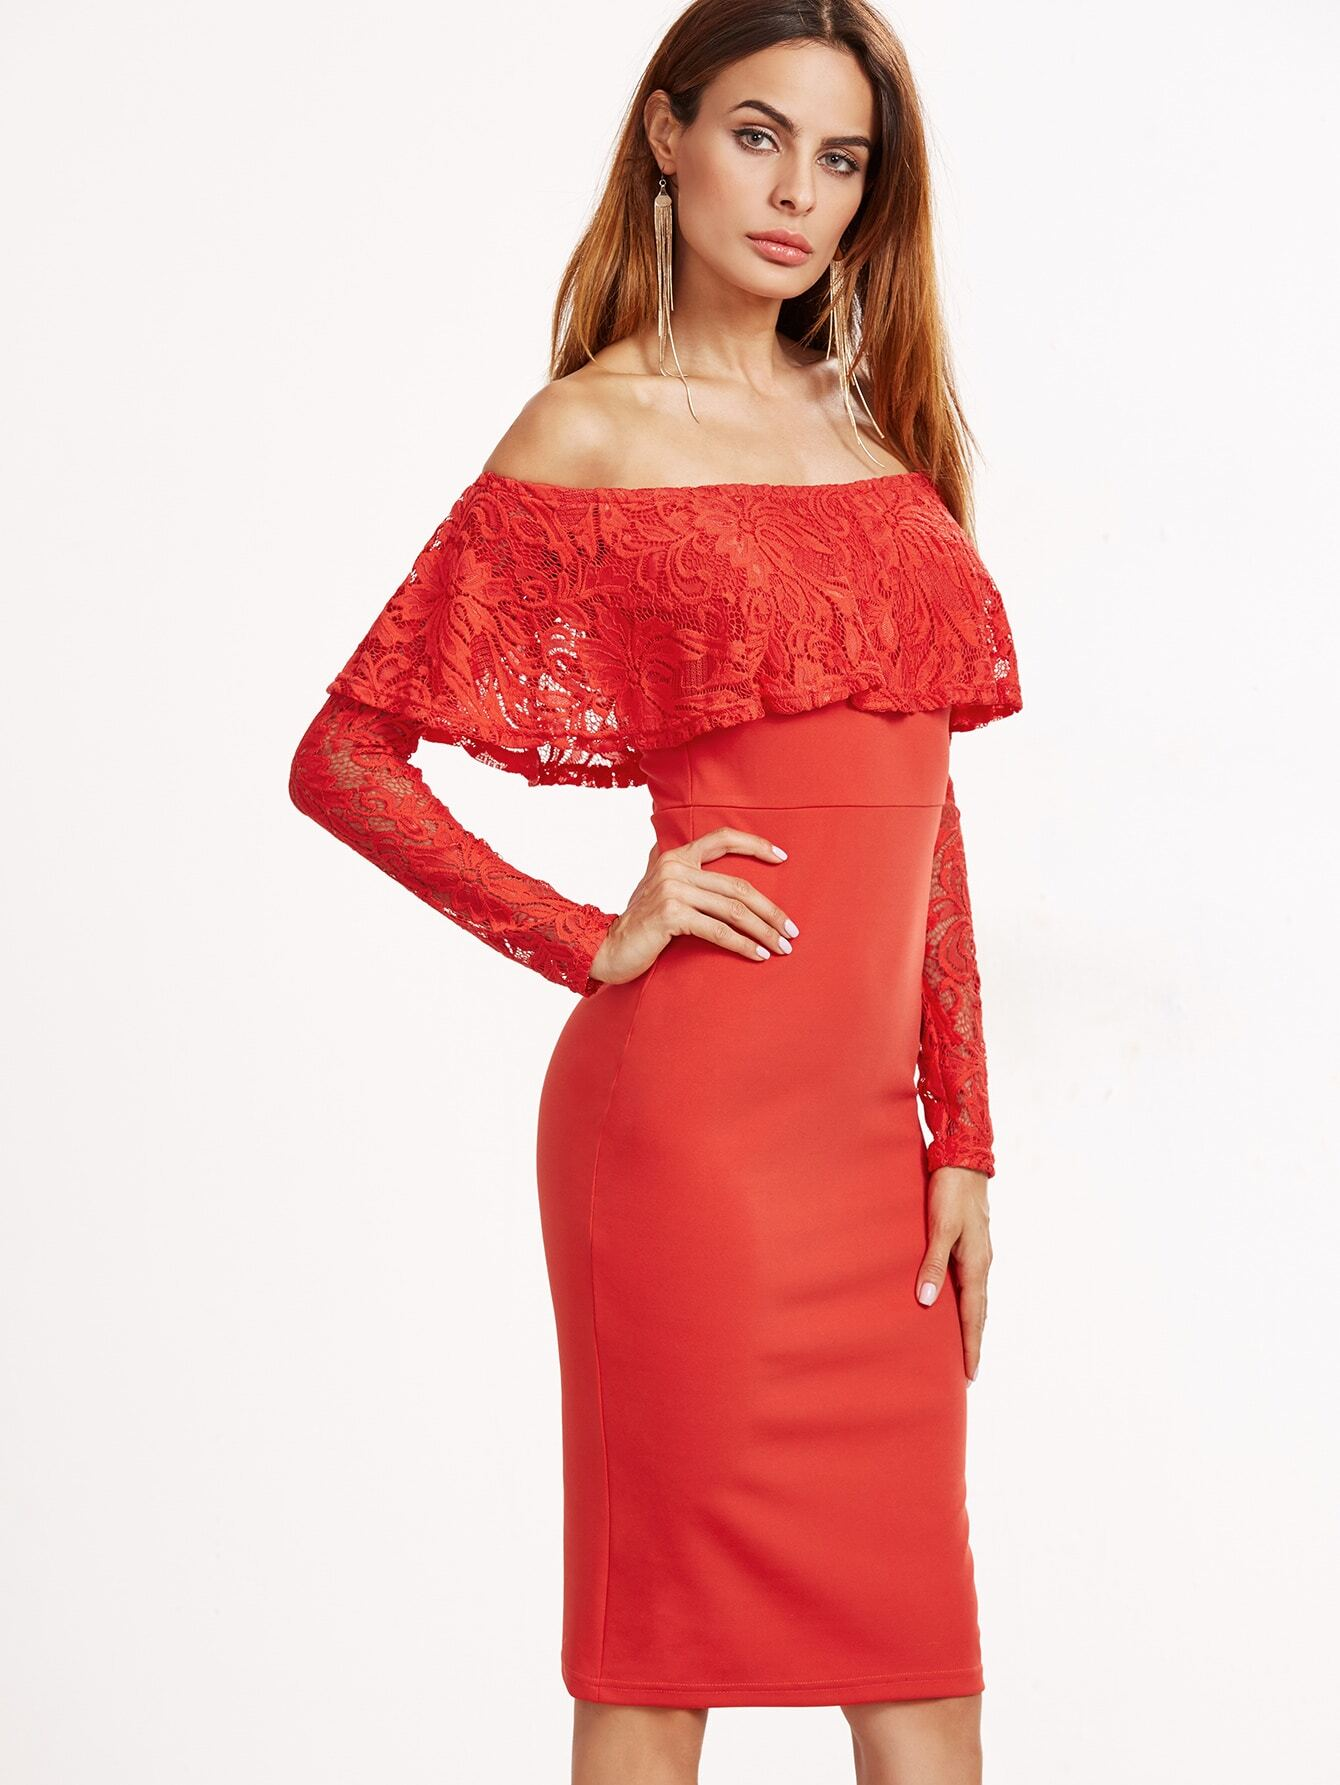 Shop for ORANGE 3XL Plus Size Flounce Off The Shoulder Dress online at $ and discover fashion at nazhatie-skachat.gq Cheapest and Latest women & men fashion site including categories such as dresses, shoes, bags and .